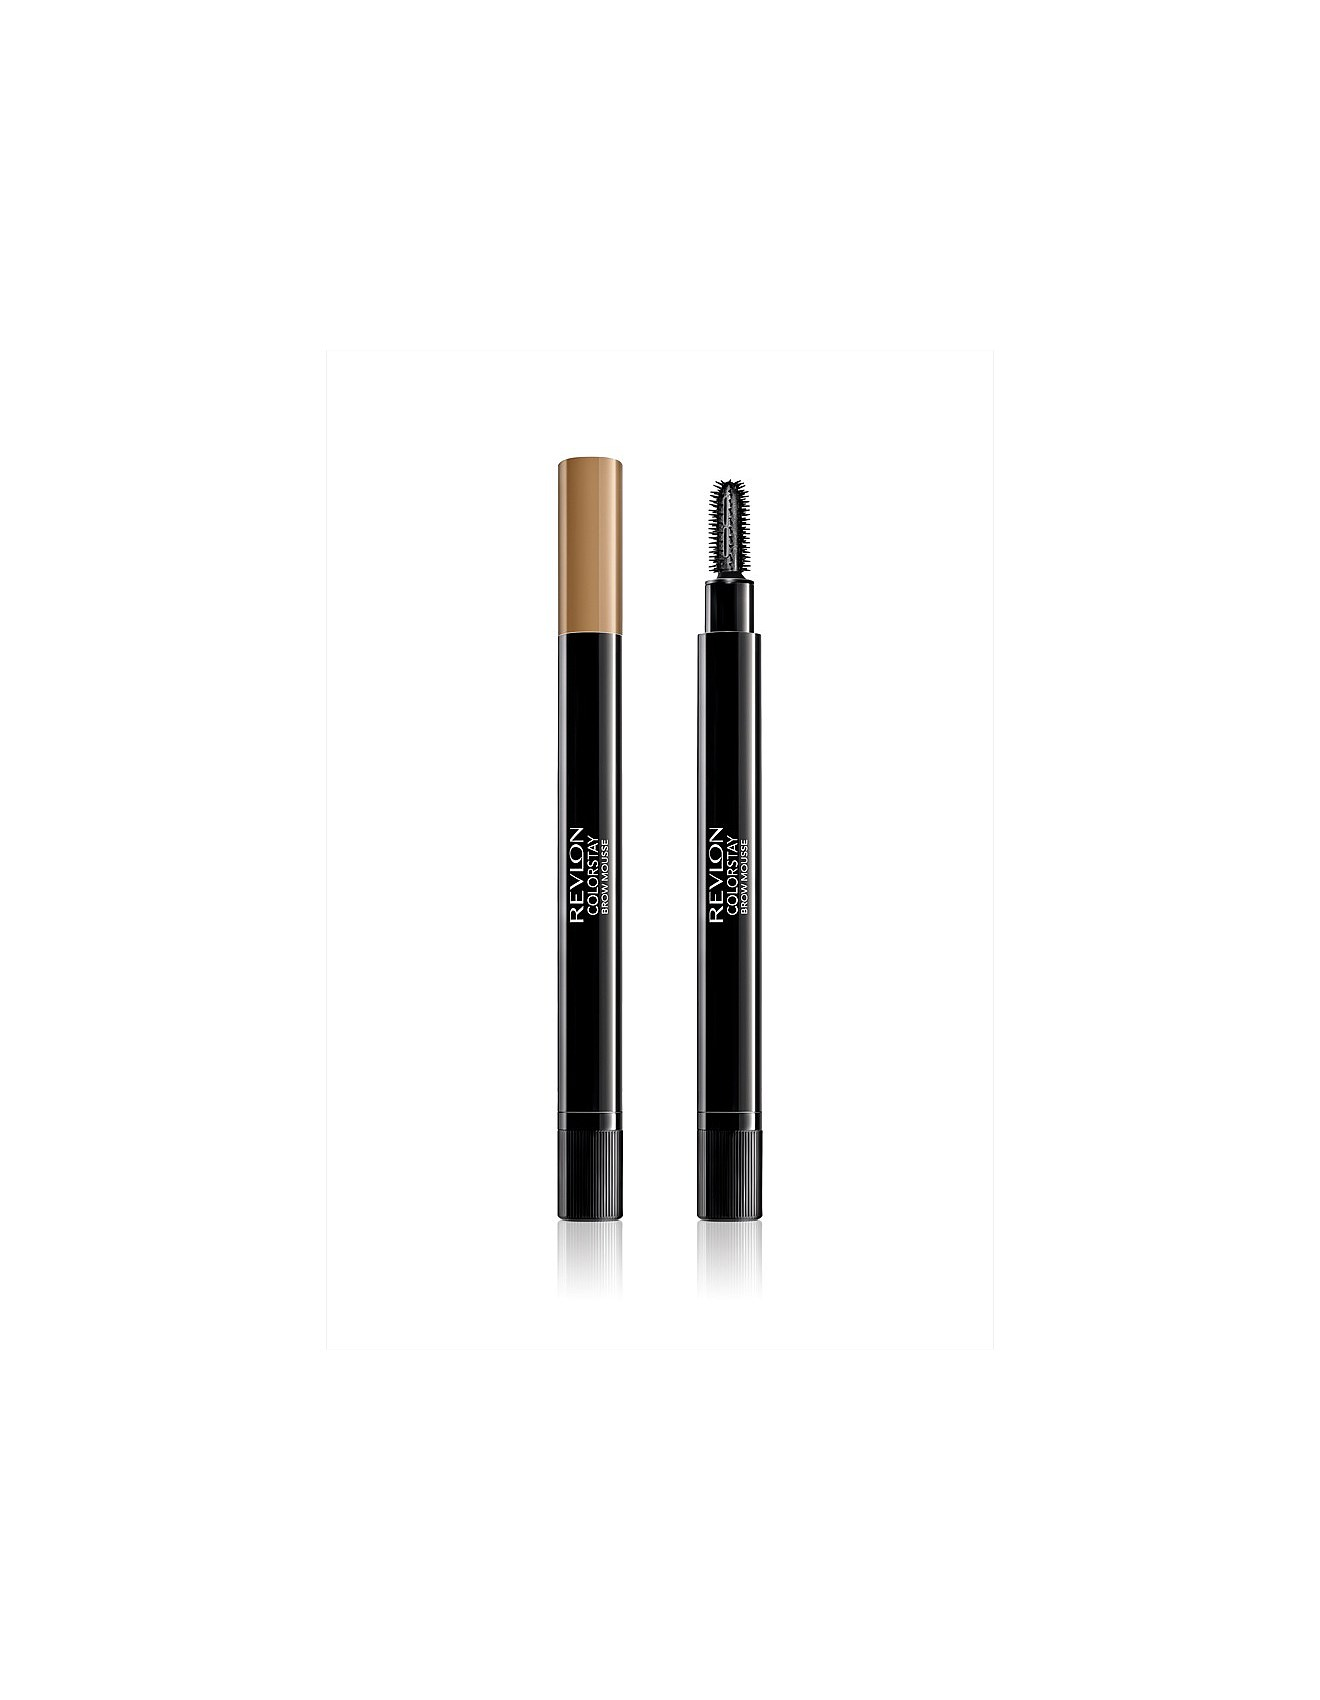 Colorstay Brow Mousse